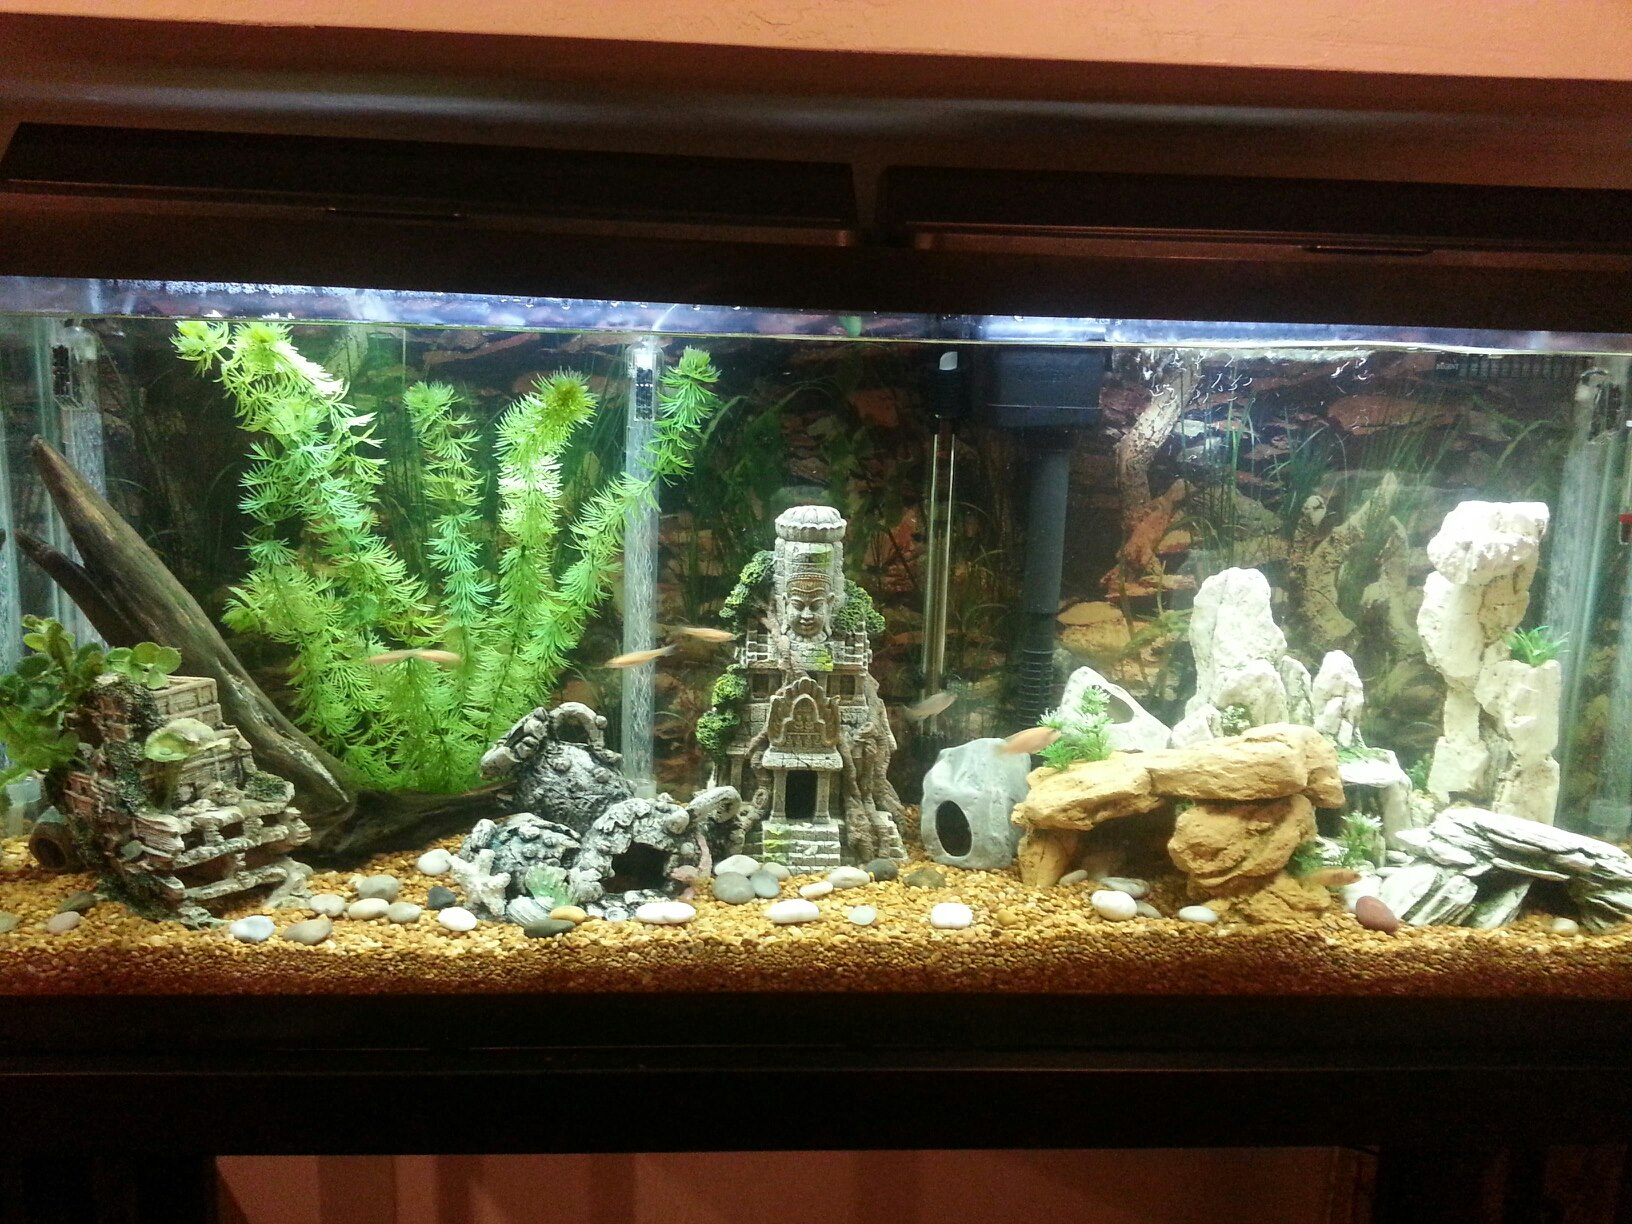 Tank setups for oscars furthermore Player in addition Player also Bluegrass Aquatics Review furthermore Fish And Aquariums. on oscar cichlids in 55 gal tank